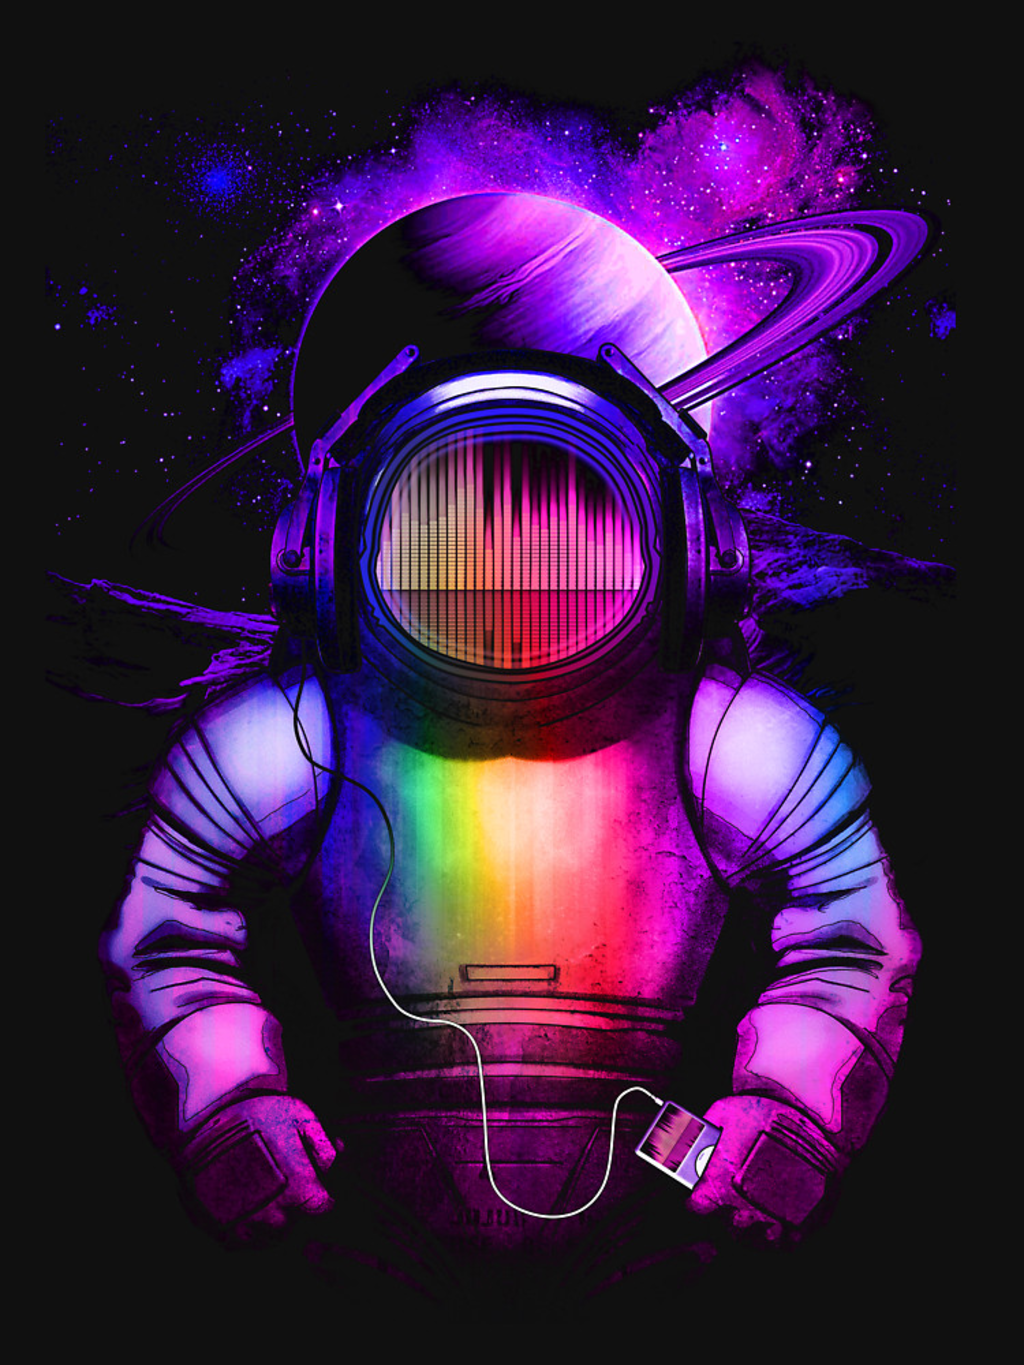 RedBubble: Music in space